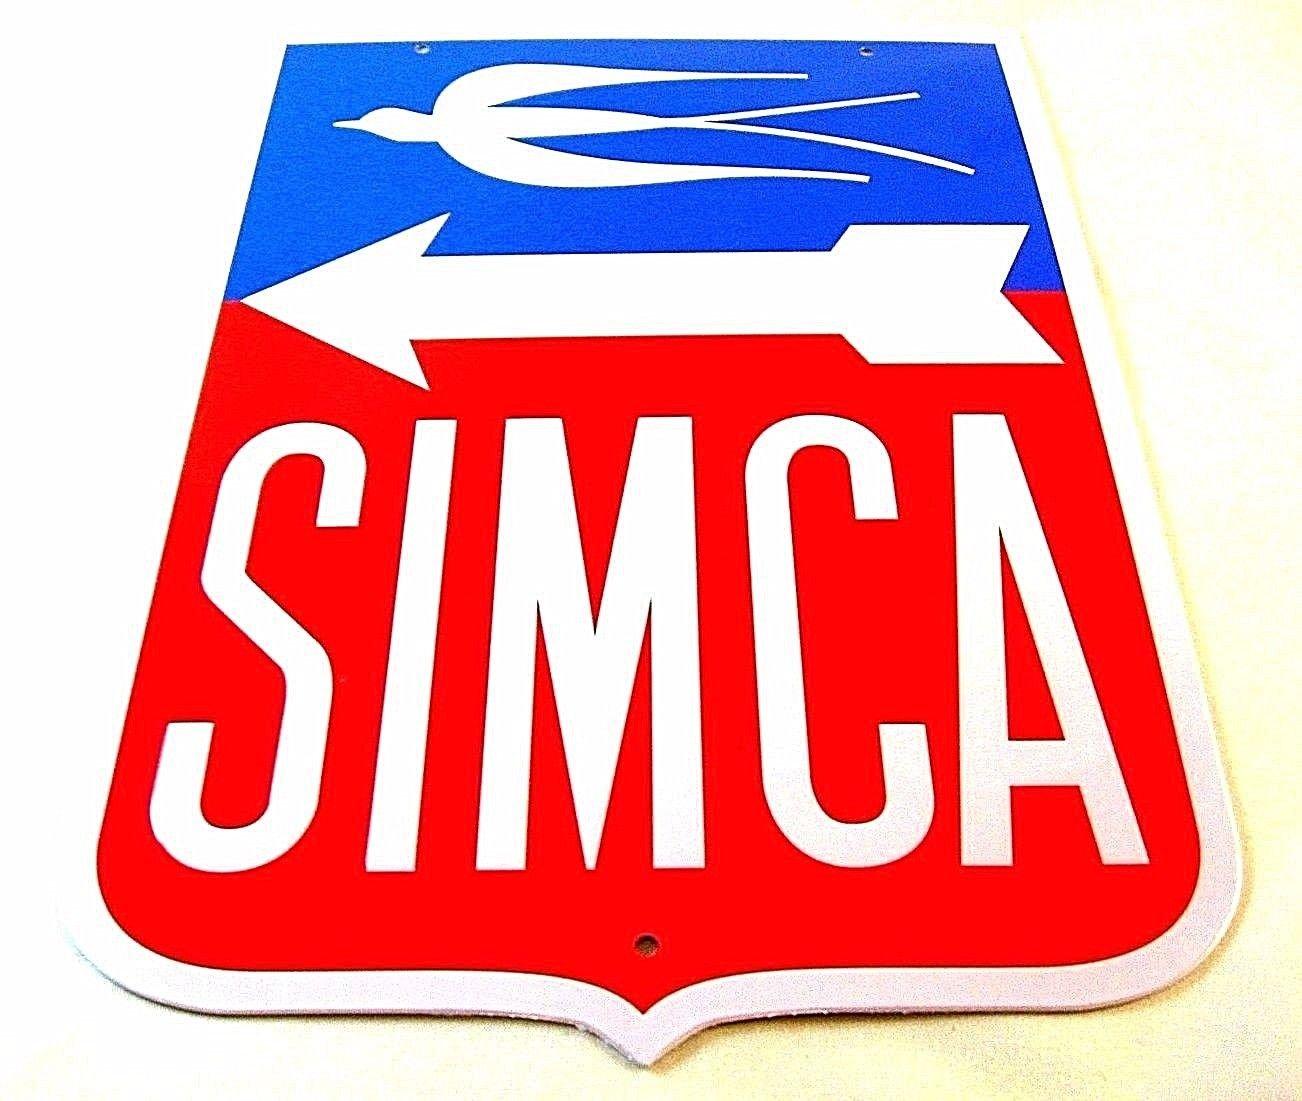 SIMCA ,VINTAGE METAL PLATE  DIORAMAX 1/1 ,CAR COLLECTOR'S ITEM, RARE , NEW